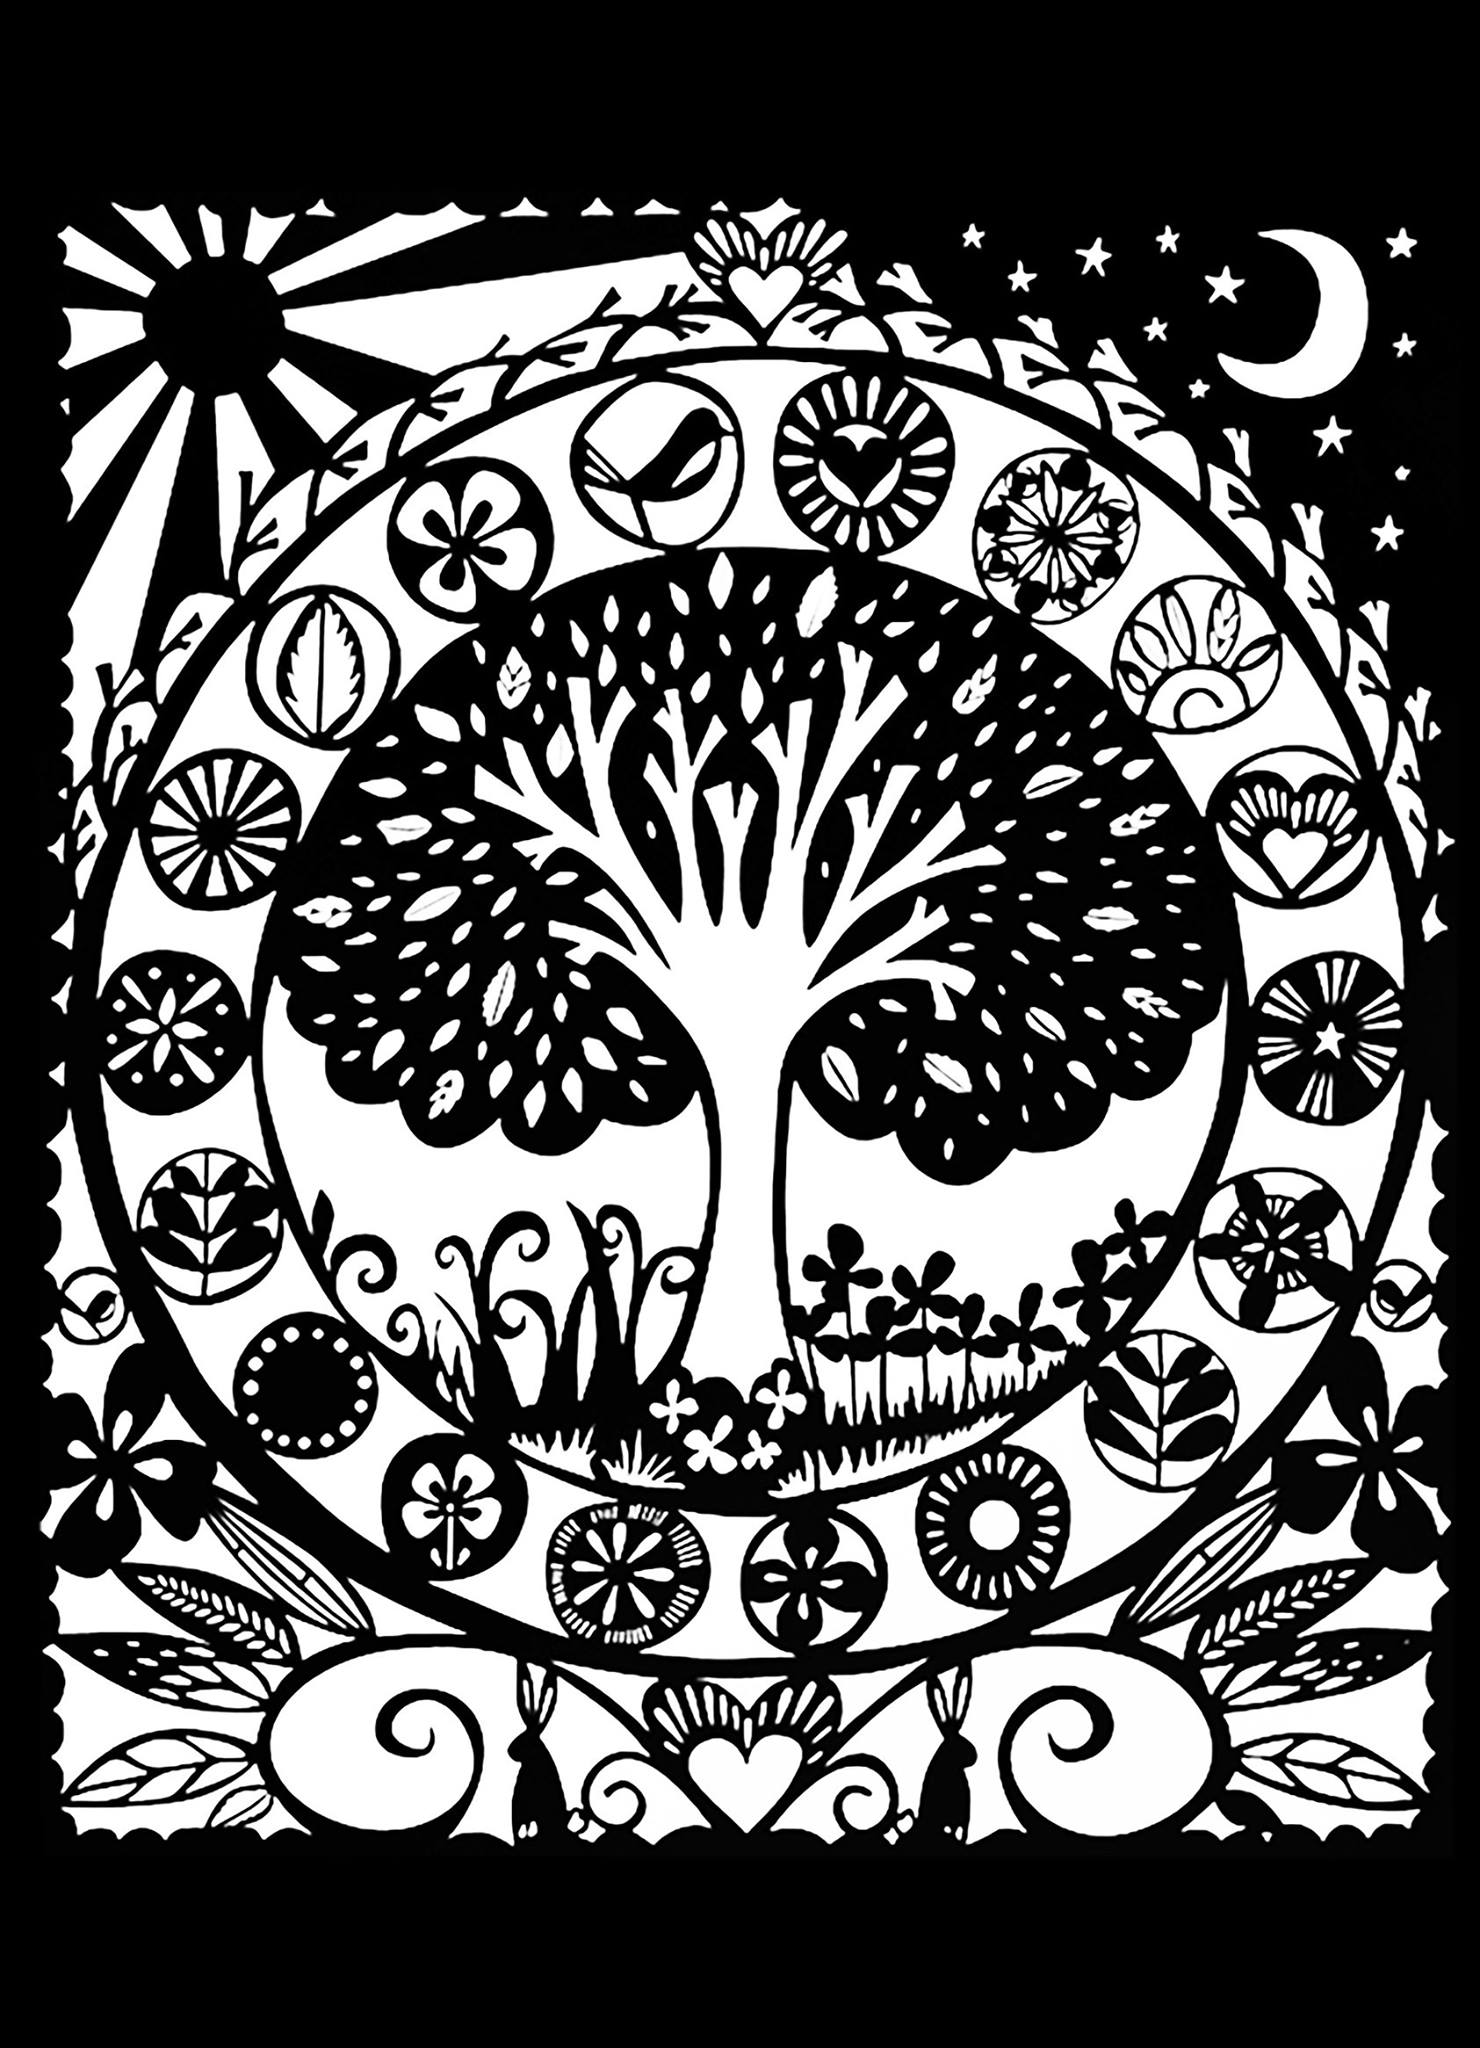 black and white coloring pages for adults free clipart of a black and white adult coloring page white for pages adults coloring black and